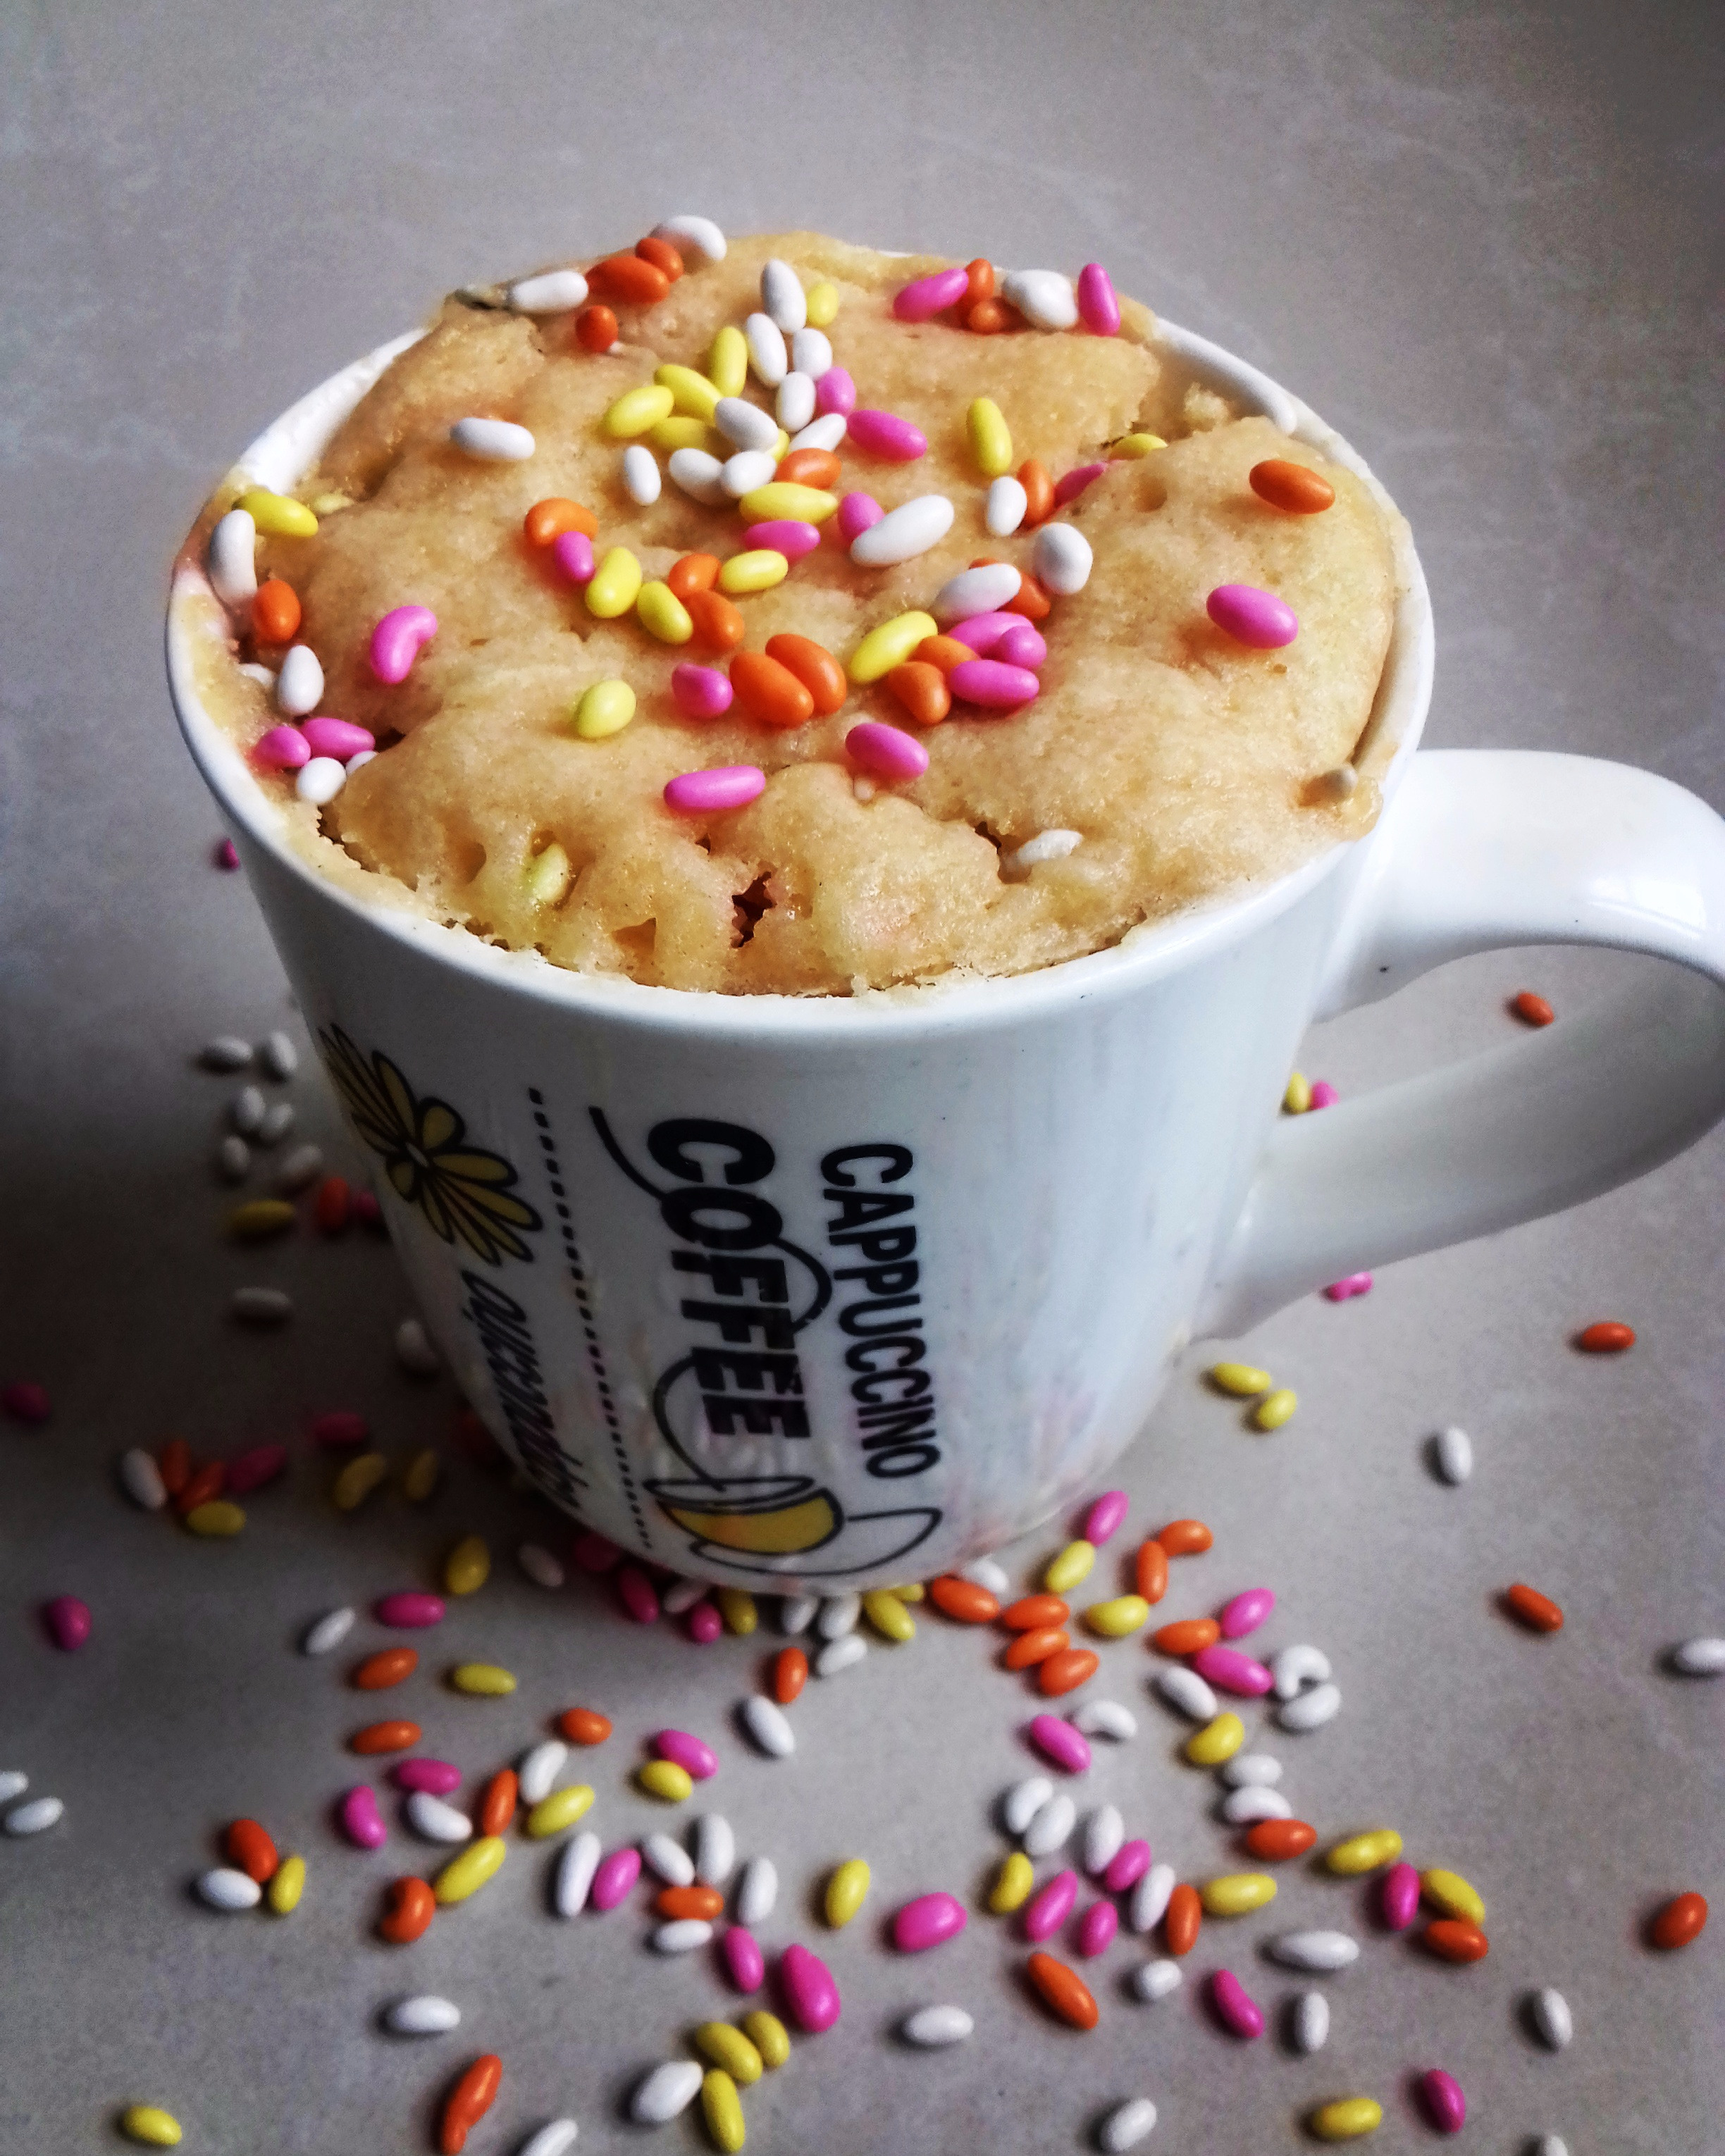 CANDIED FENNEL SEEDS MUG CAKE